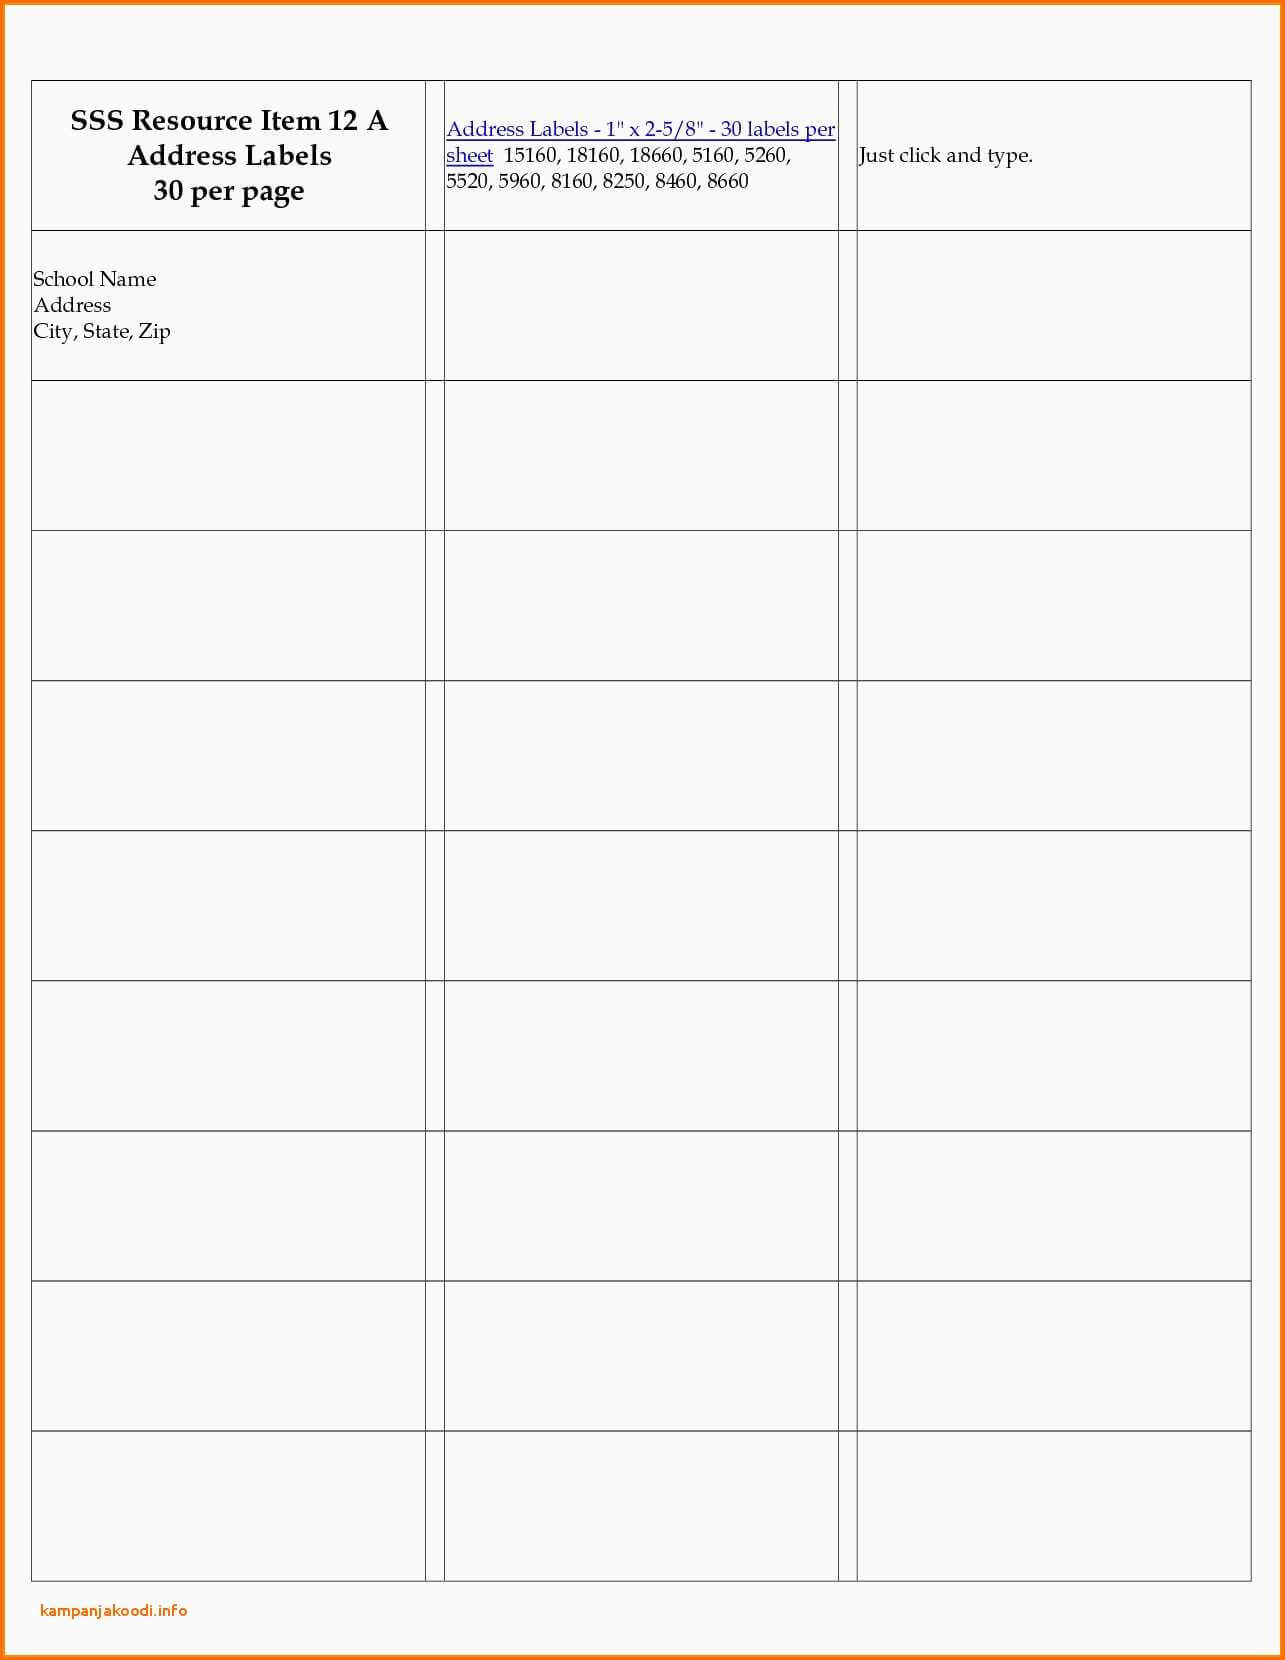 003 Label Templates For Word Per Sheet Labels Template Inside Labels 8 Per Sheet Template Word